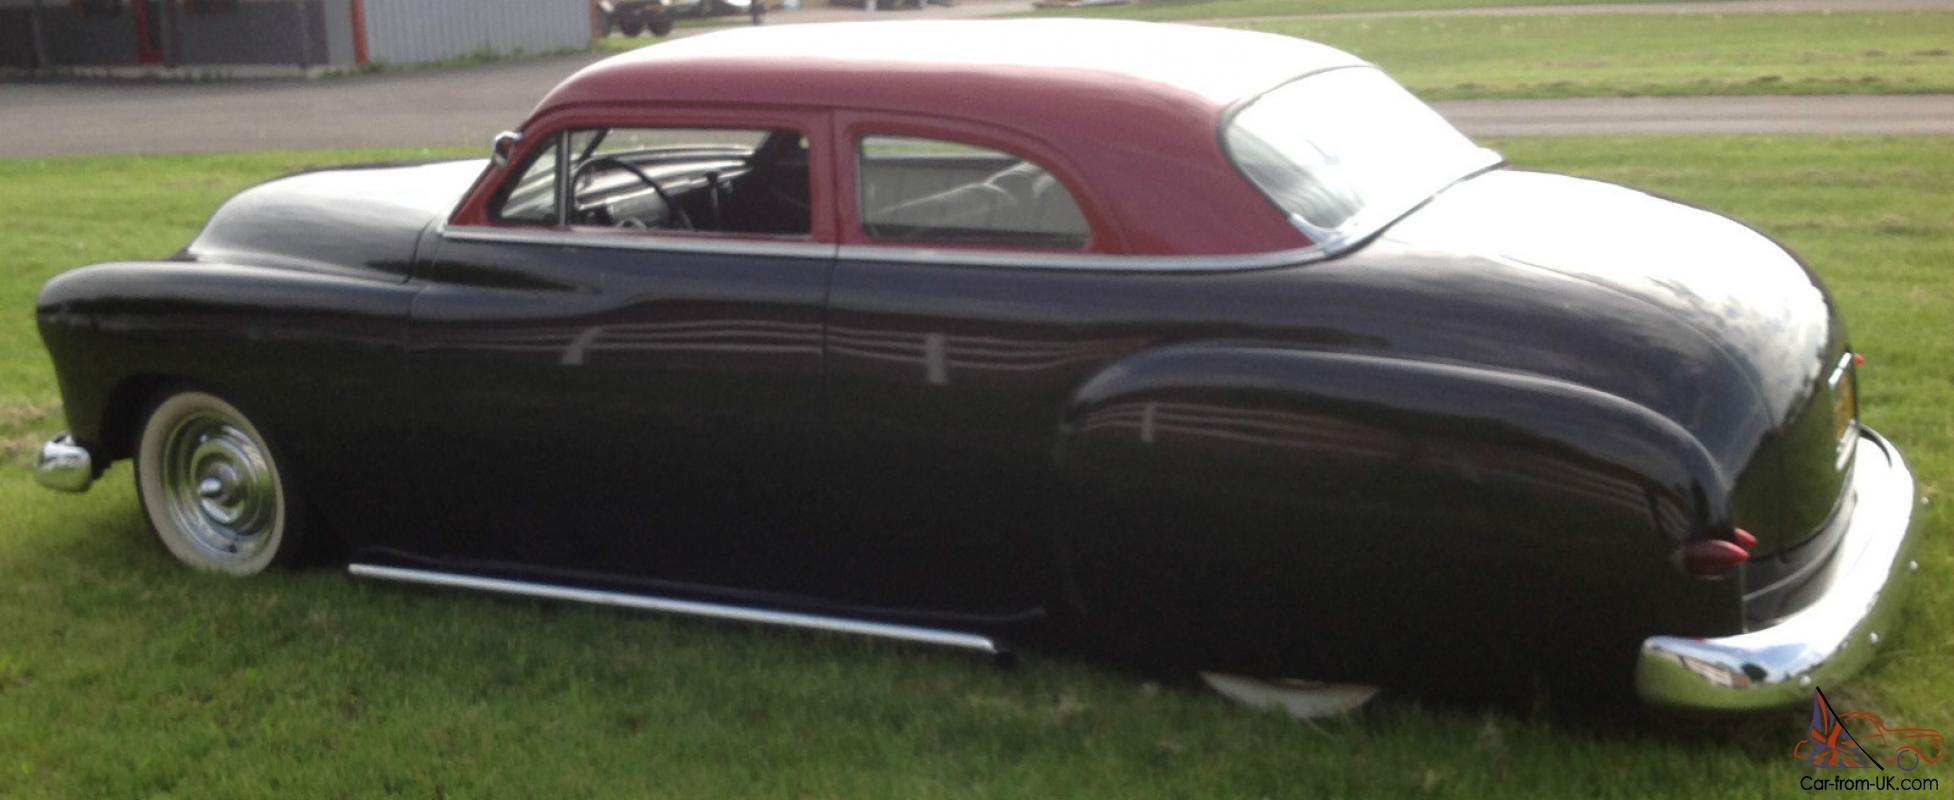 hight resolution of 1952 plymouth chopped custom hot rod 52 plymouth concord wiring